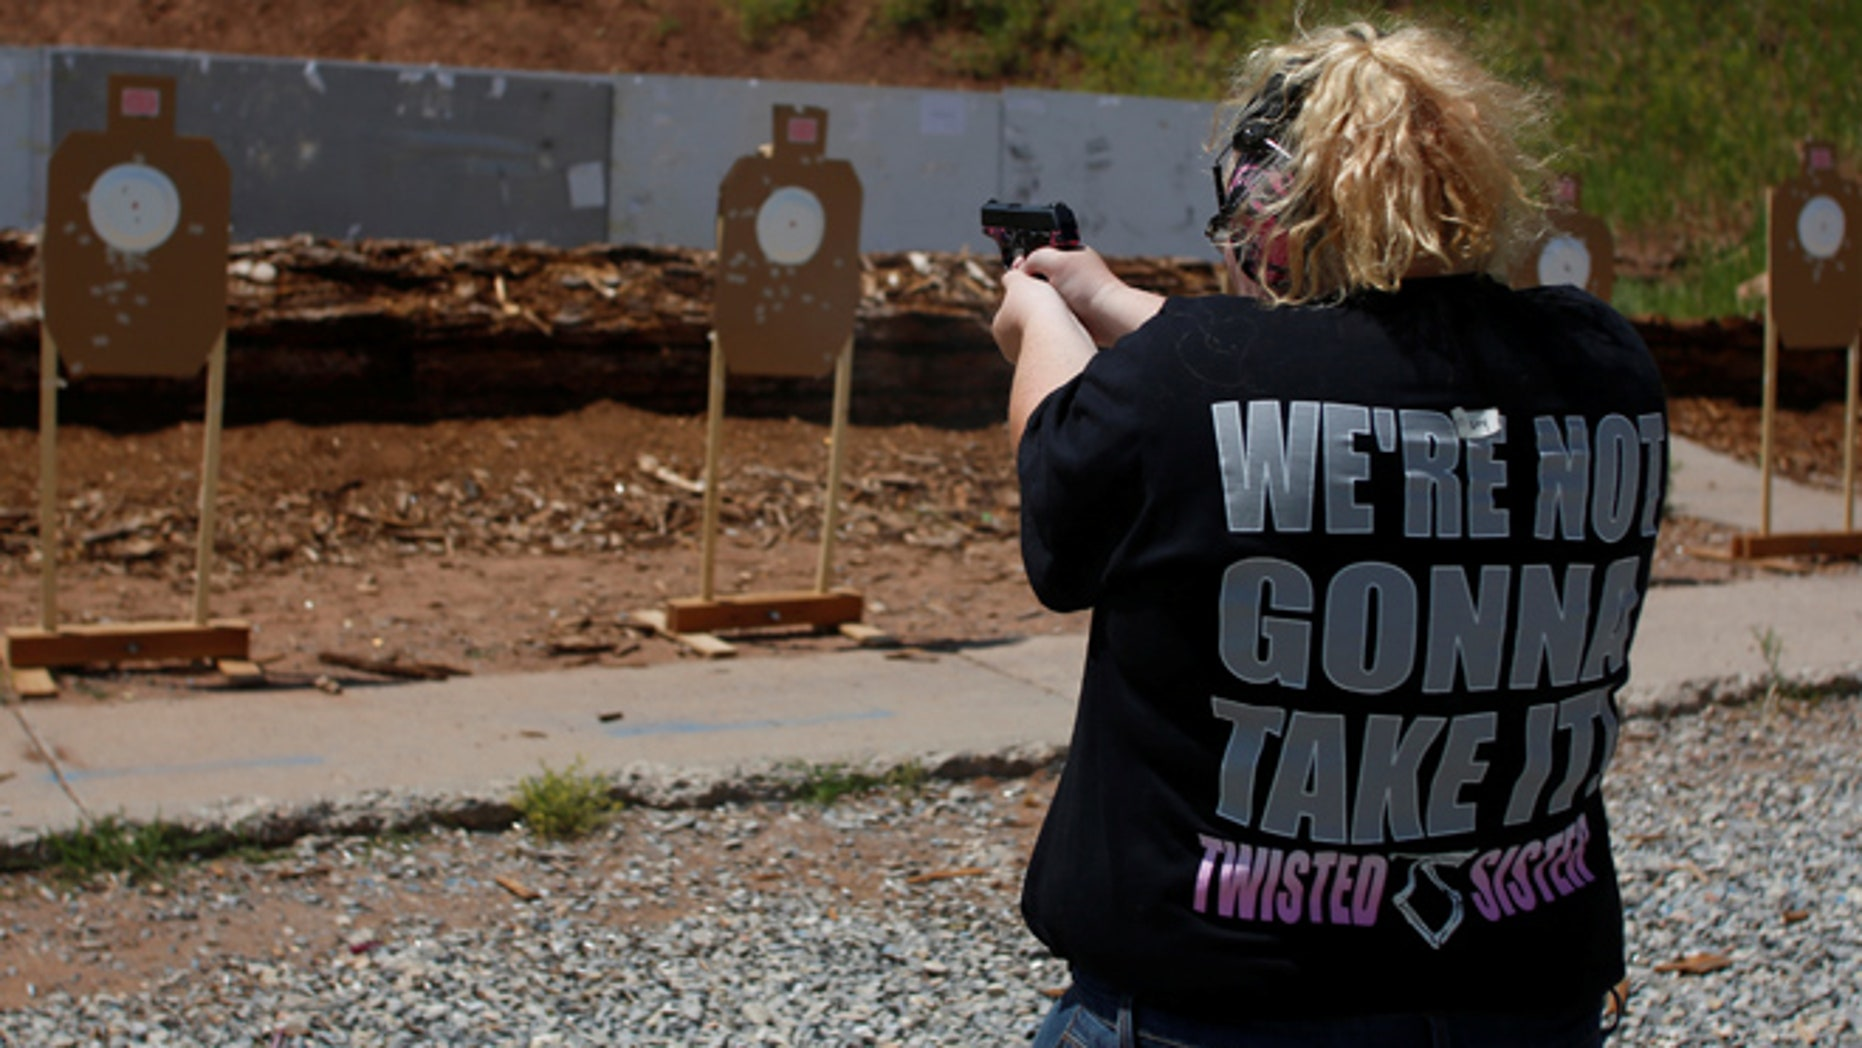 Mallory Washburn shoots at targets during a firearms training class attended by members of the Pink Pistols, a national pro-gun LGBT organization  at the PMAA Gun Range in Salt Lake City, Utah